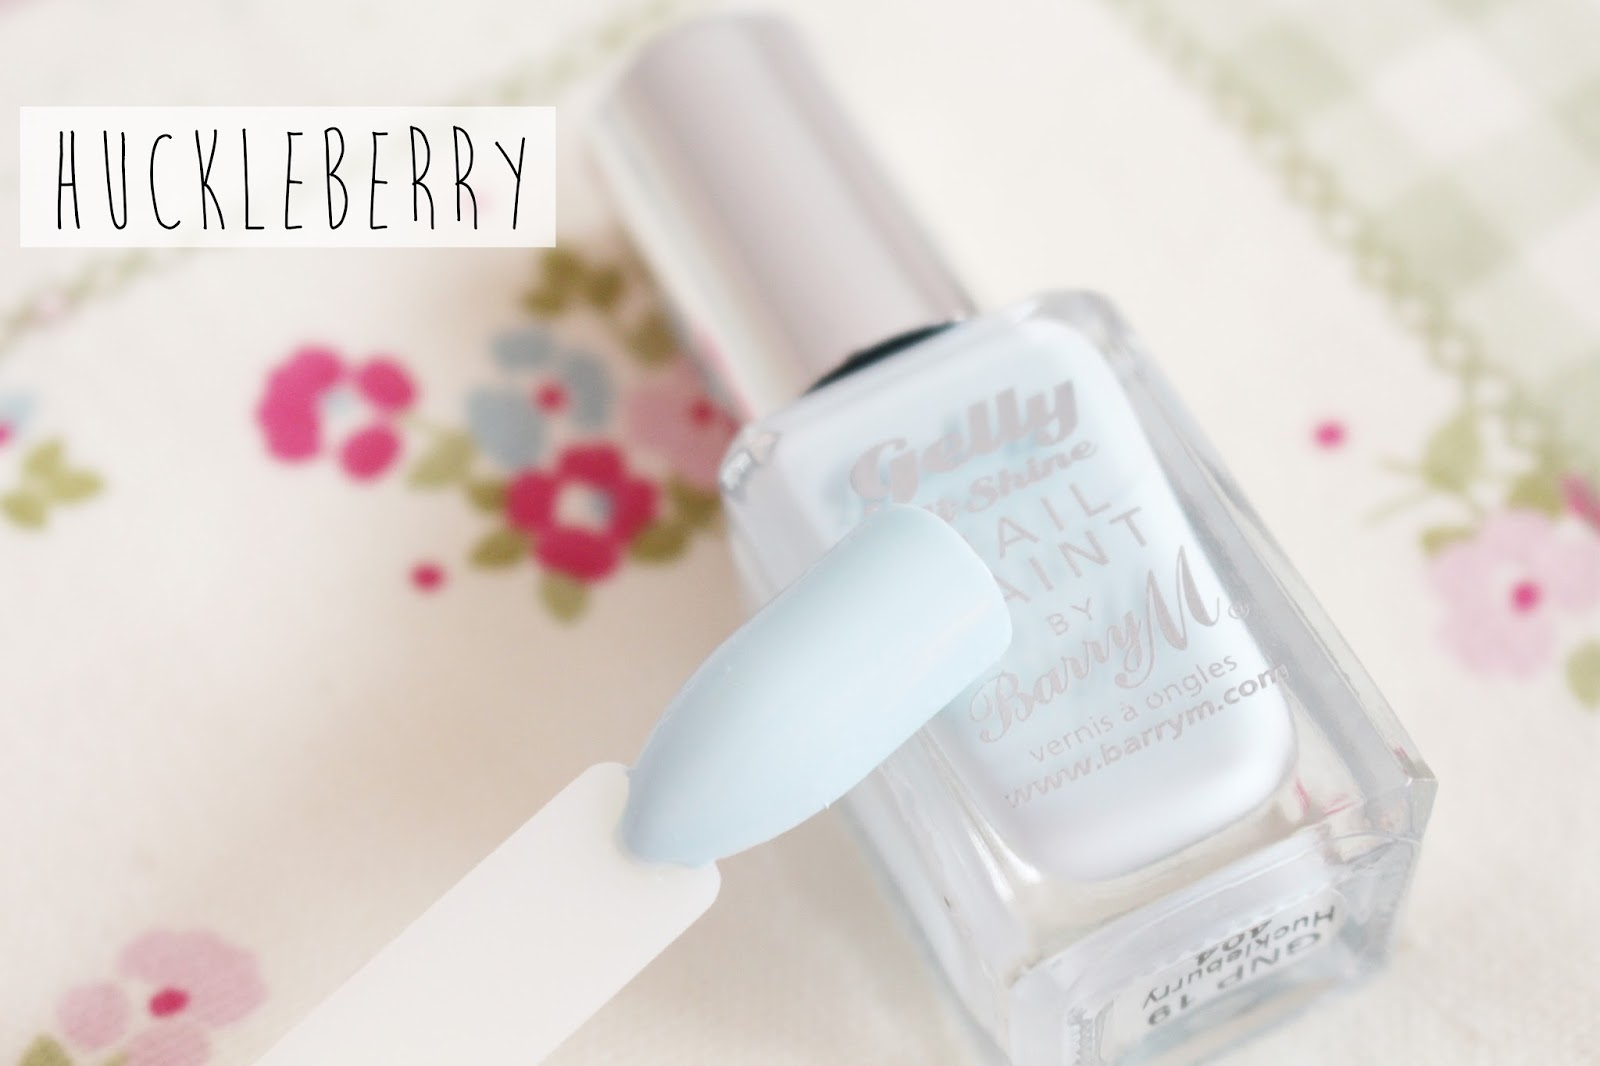 Barry M Gelly Nail Paint Spring HuckleBerry